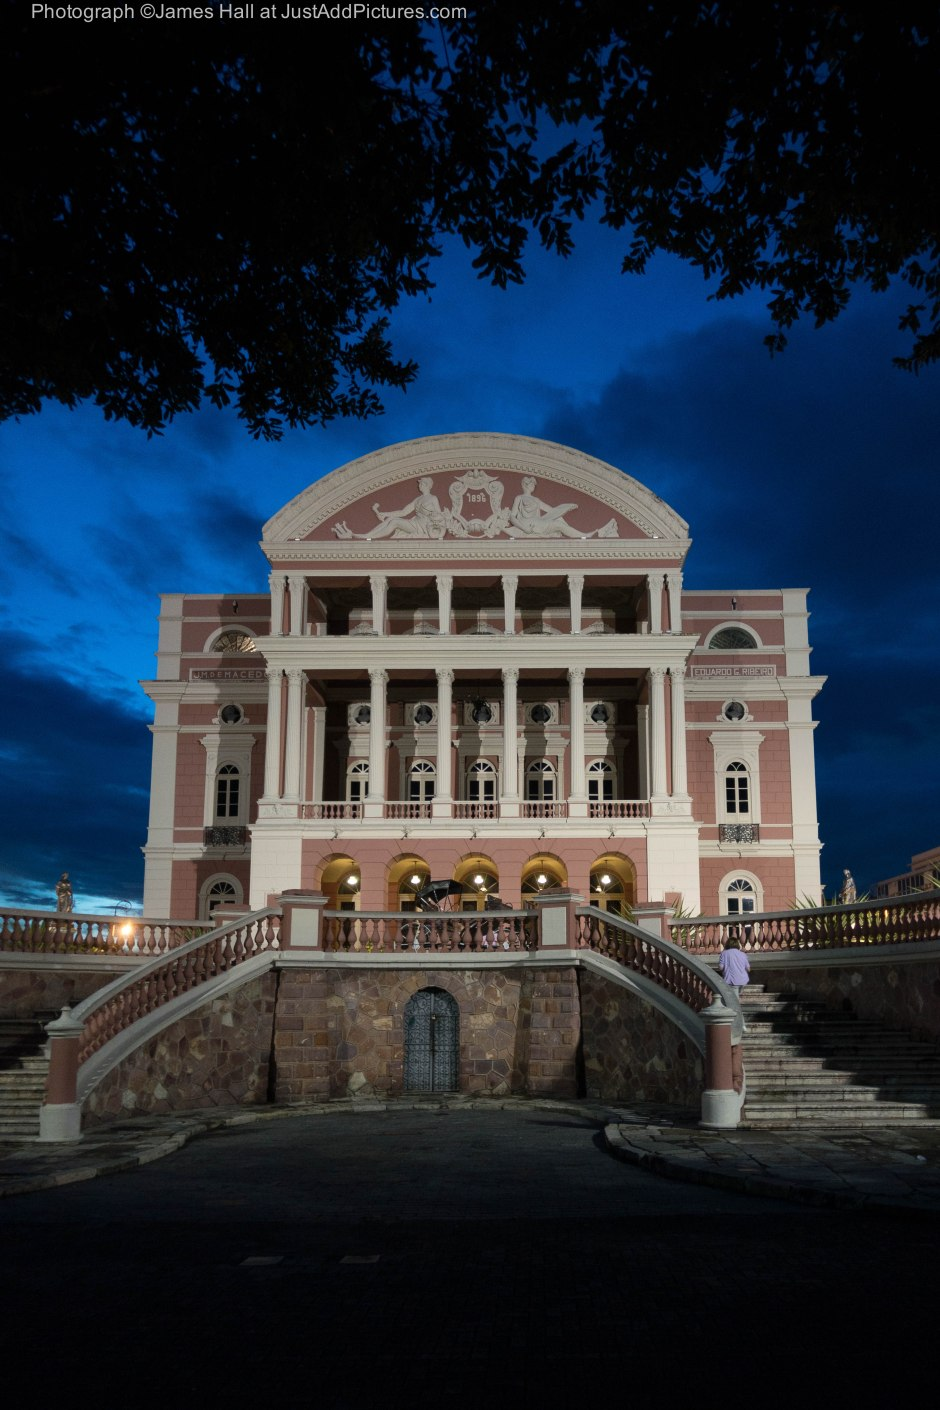 The Opera House, Manaus built when Manaus was the richest city in Brazil and a significant business centre.